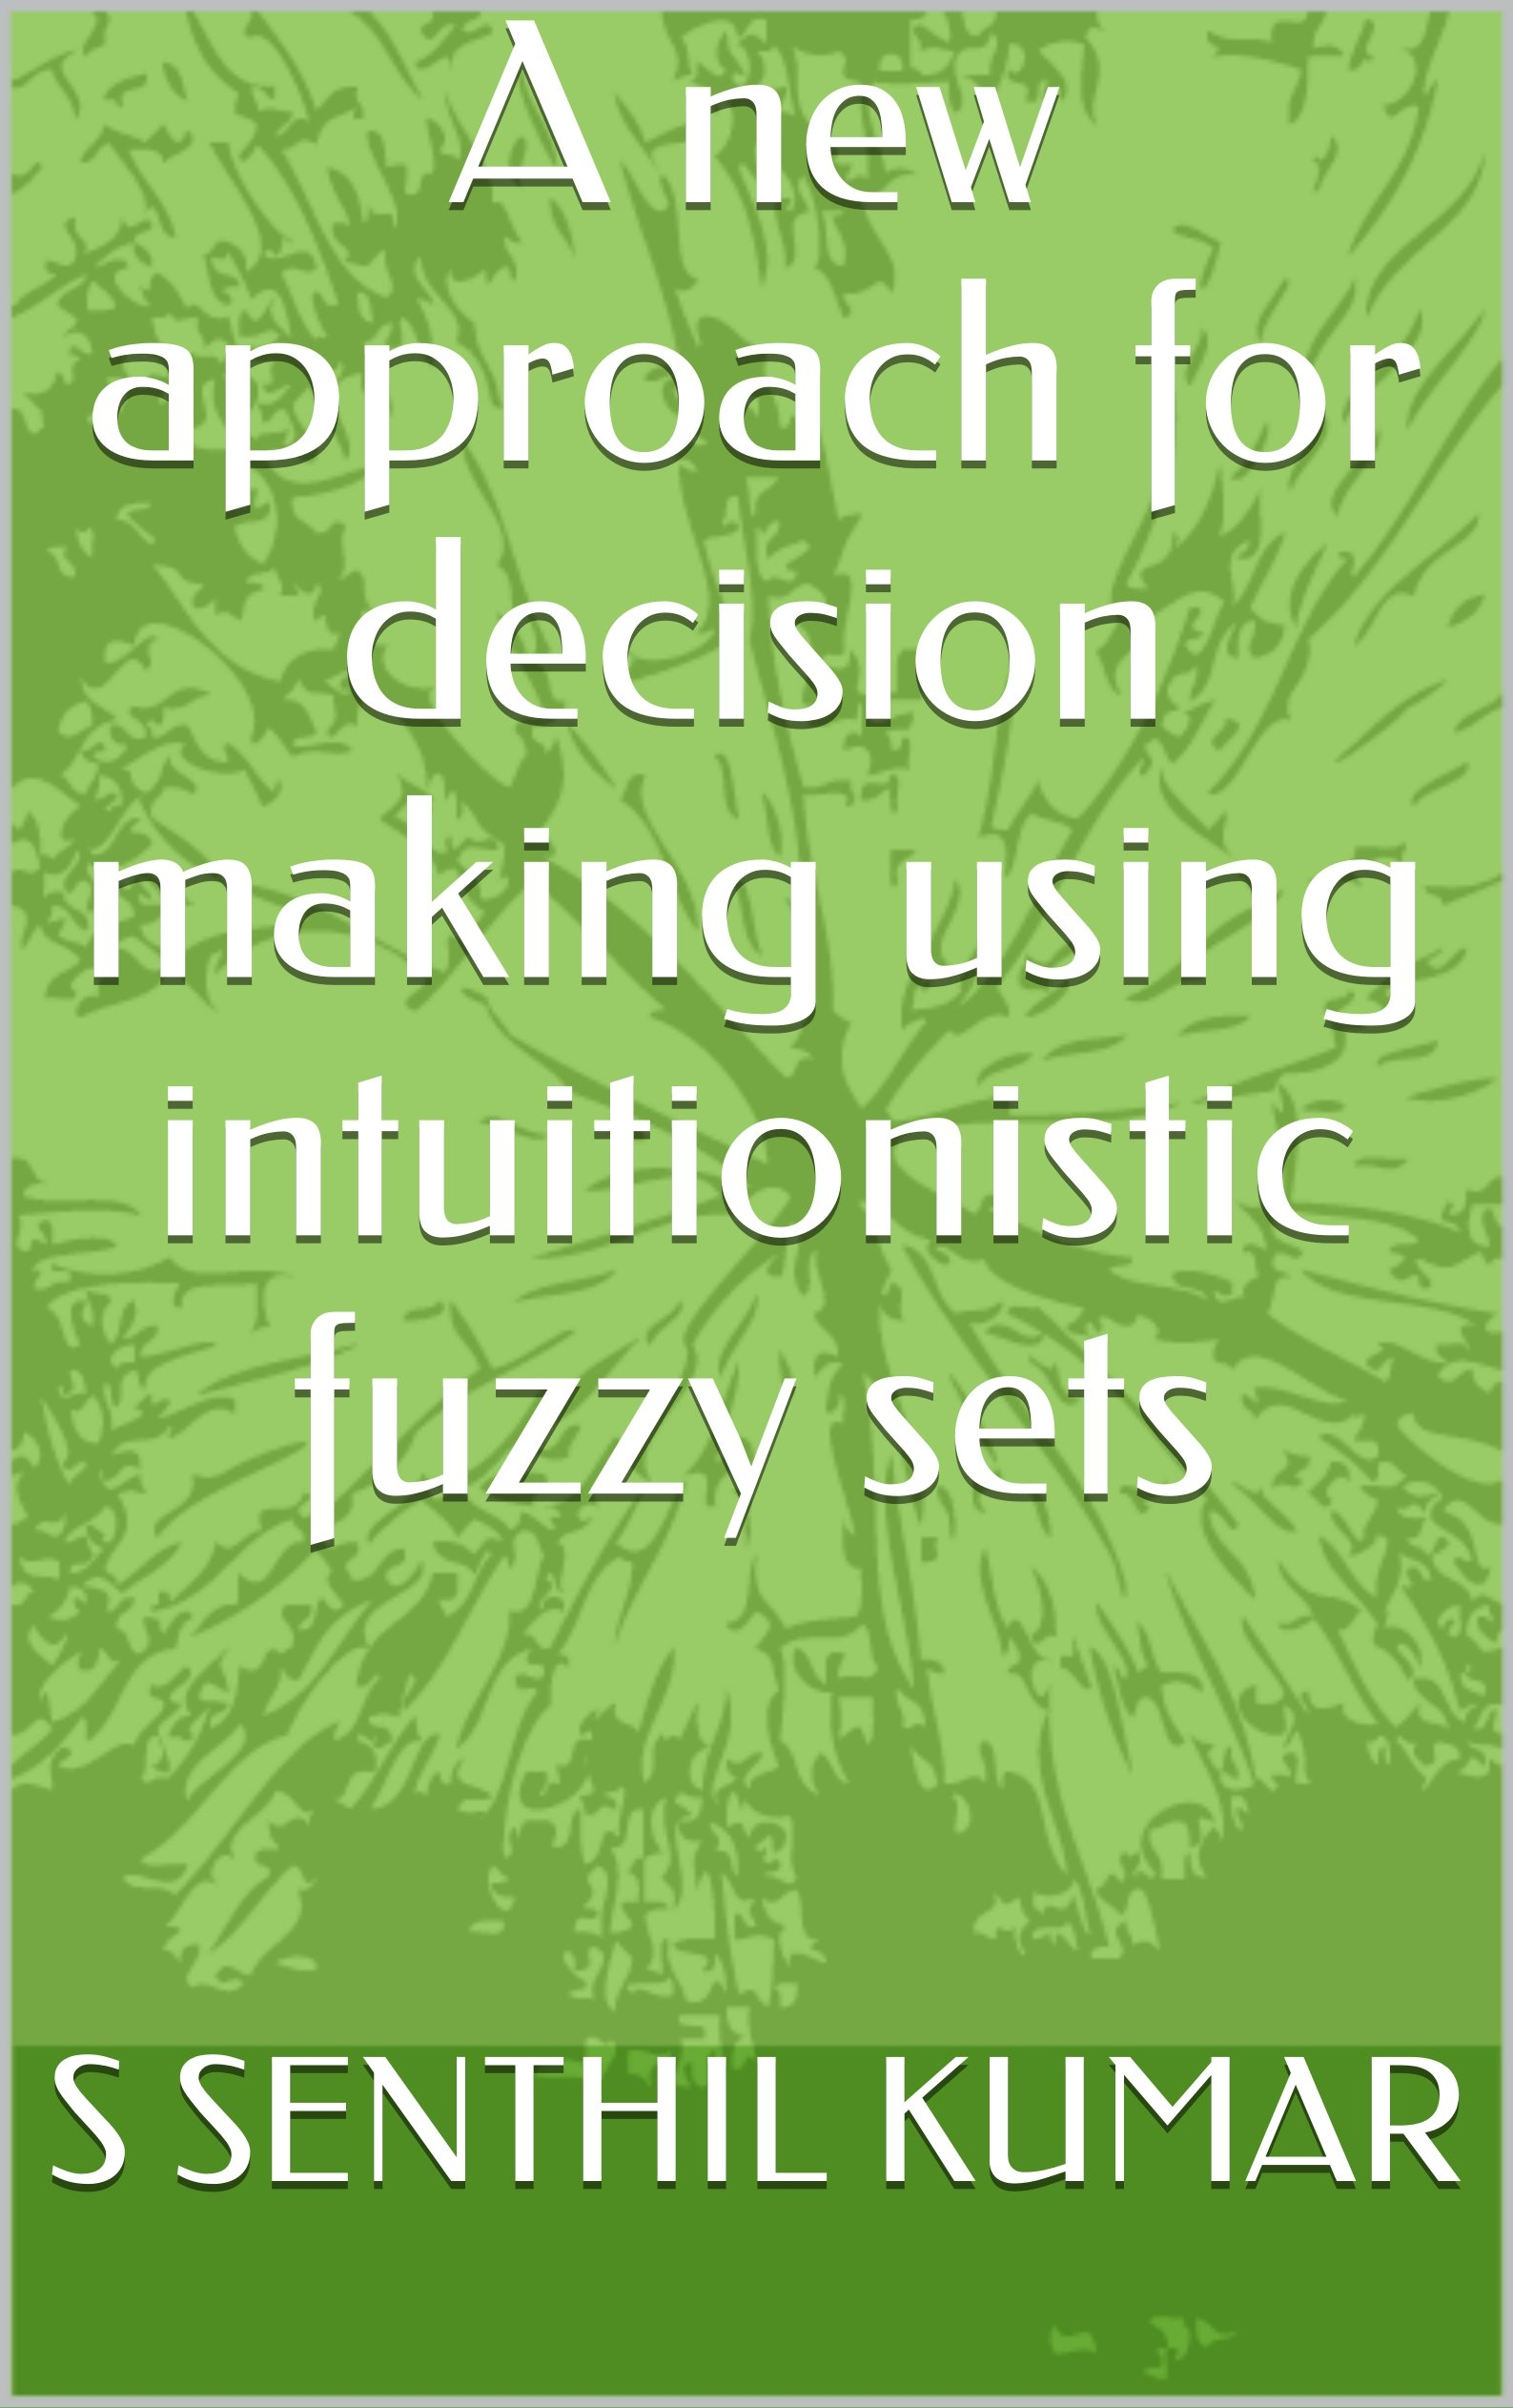 A New Approach For Decision Making Using Intuitionistic Fuzzy Sets  English Edition